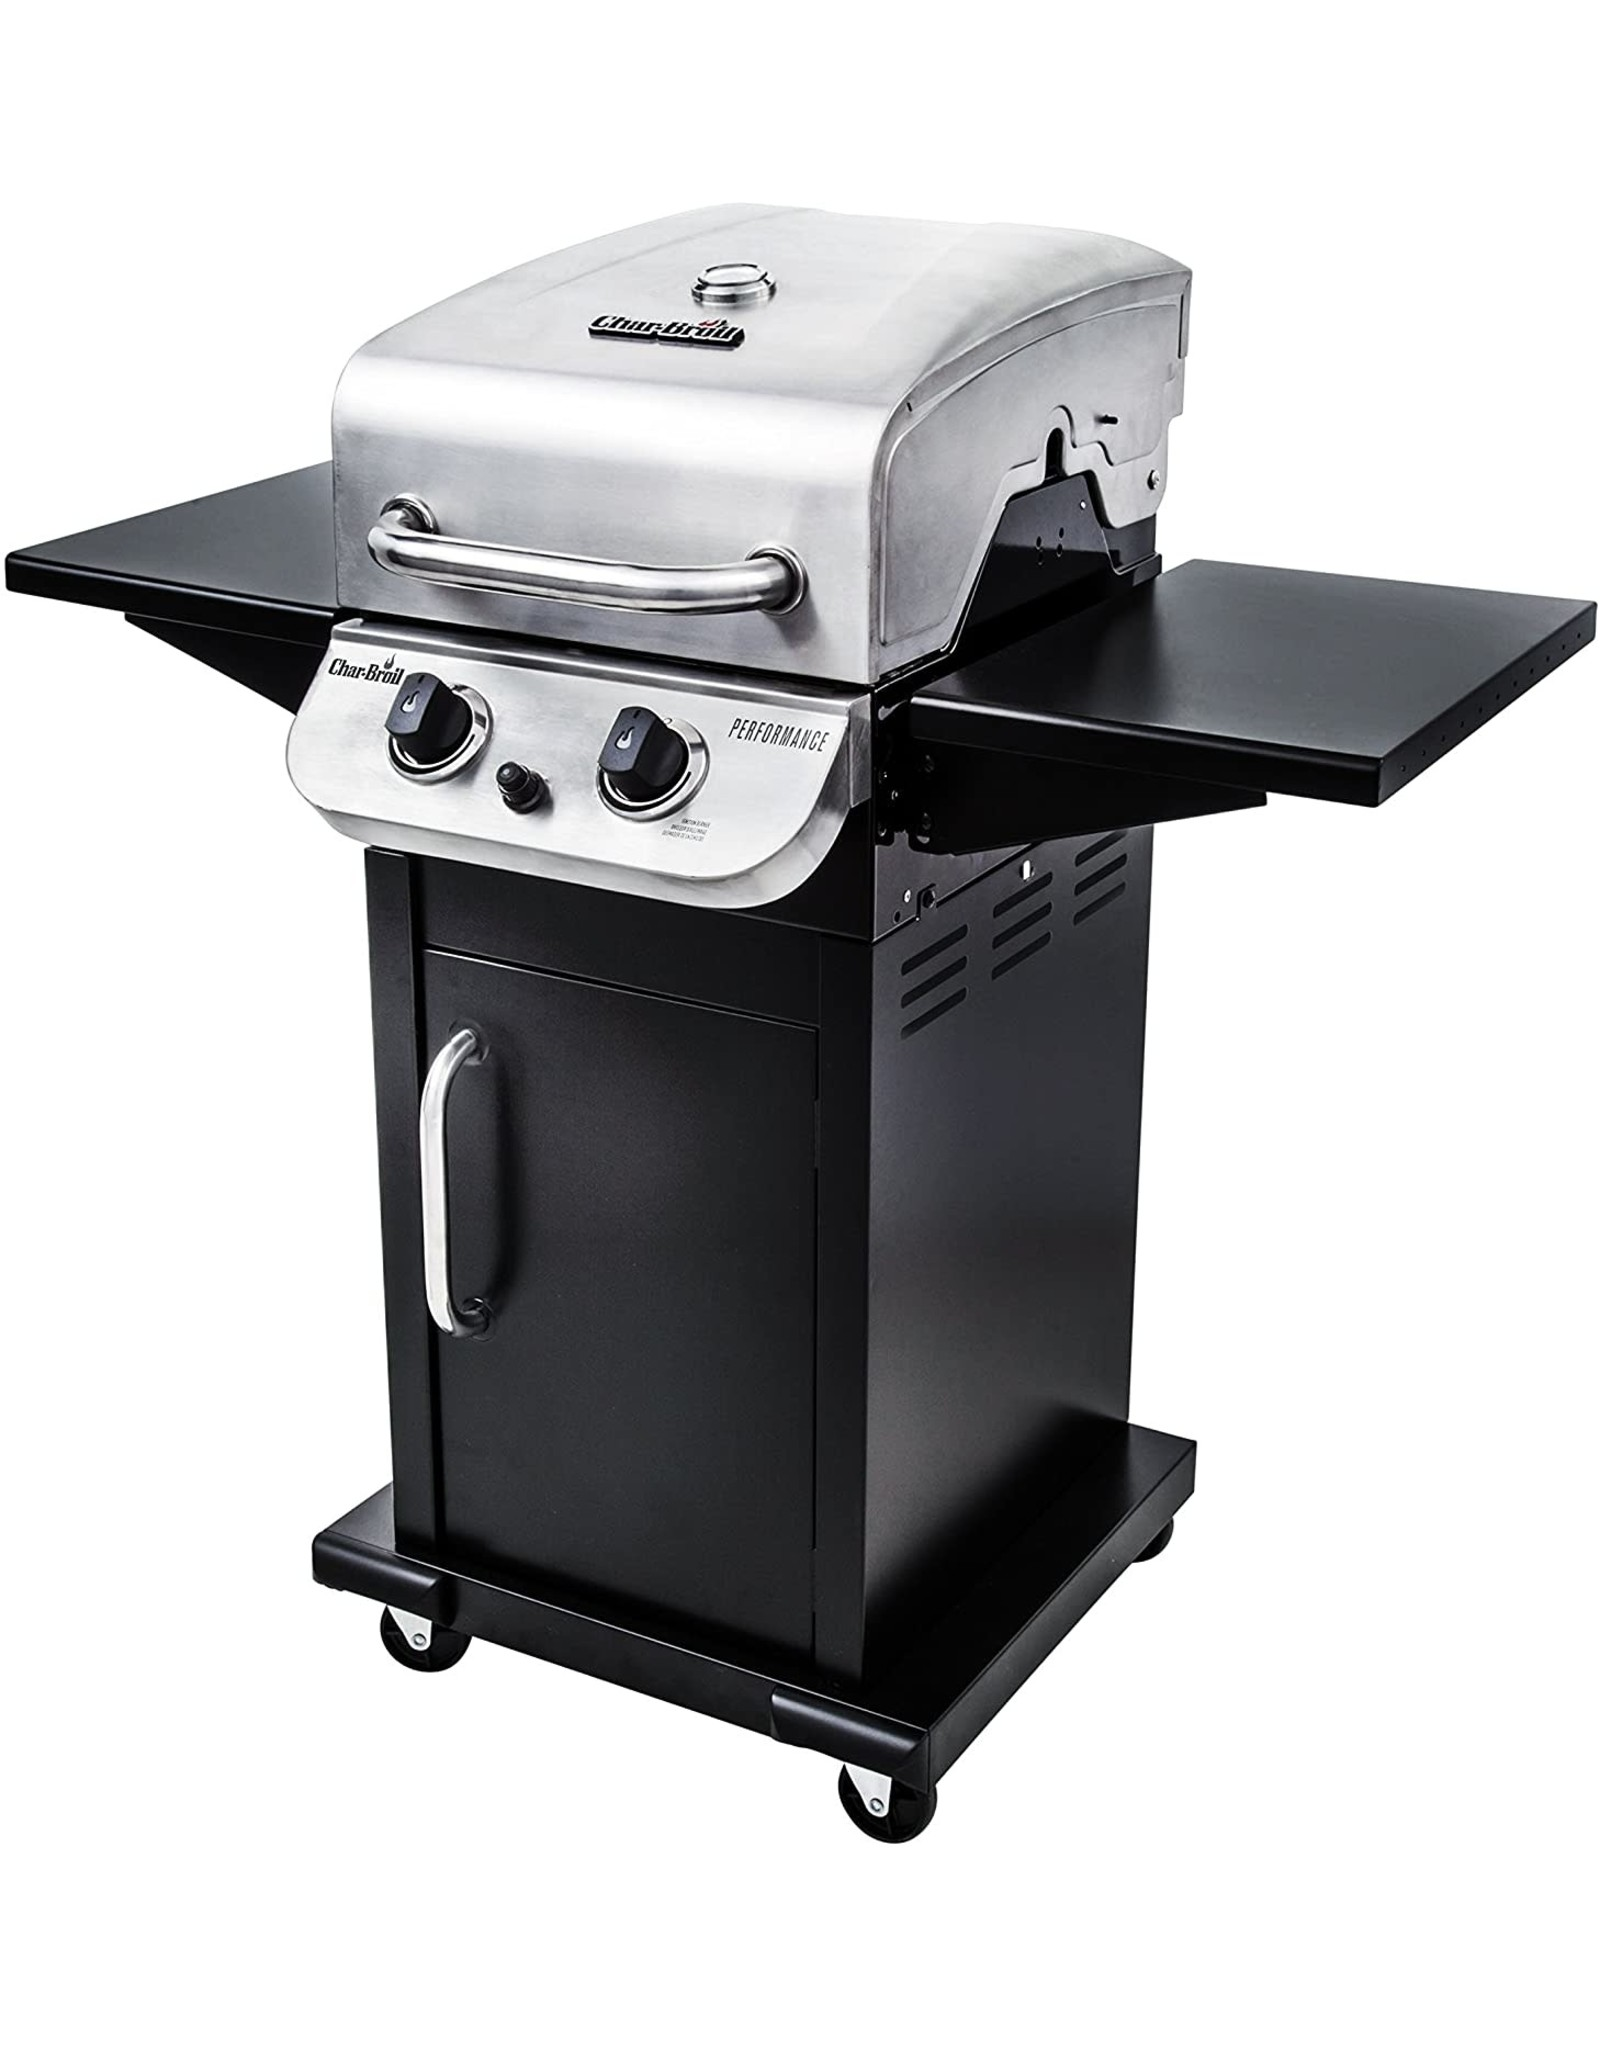 Char-Broil Char-Broil 463673519 Performance Series 2-Burner Cabinet Liquid Propane Gas Grill, Stainless Steel